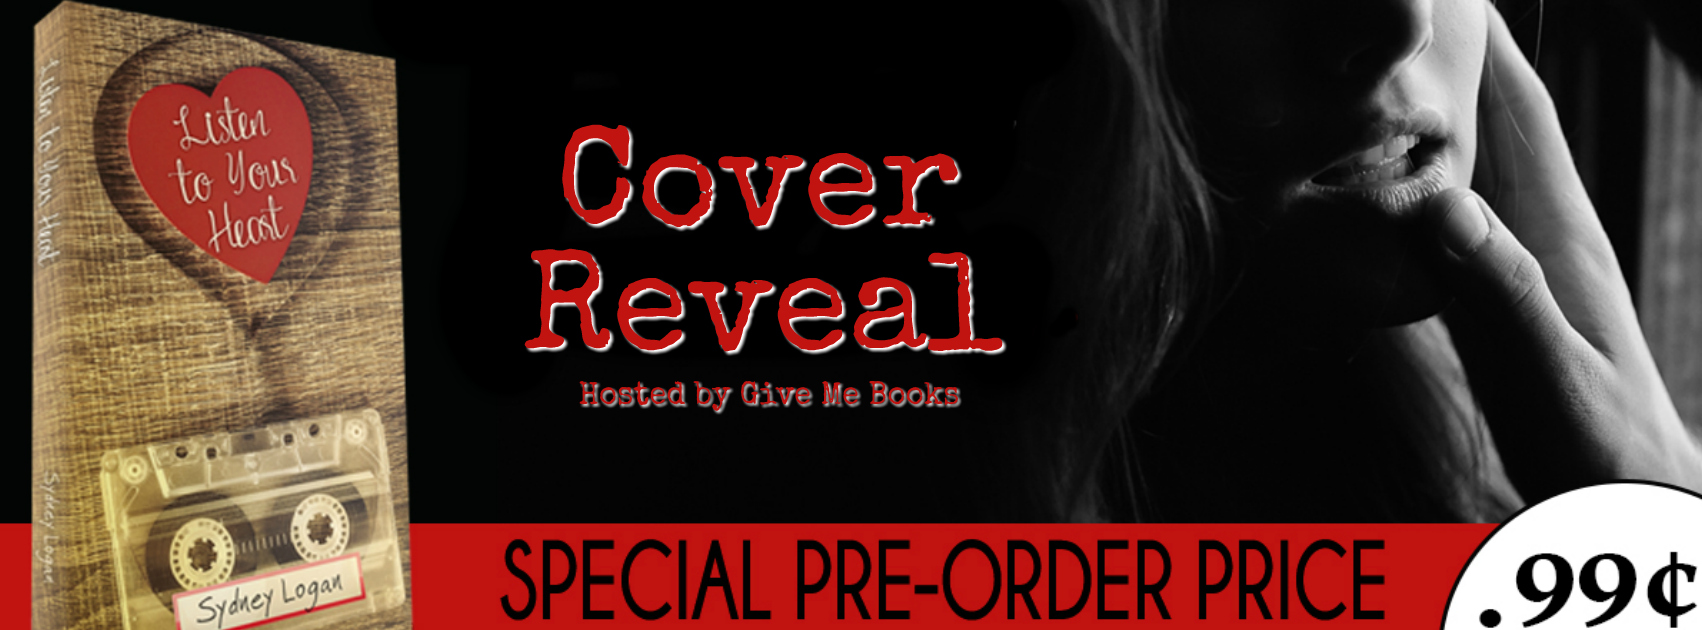 {Cover Reveal} Listen to Your Heart by @SydneyALogan